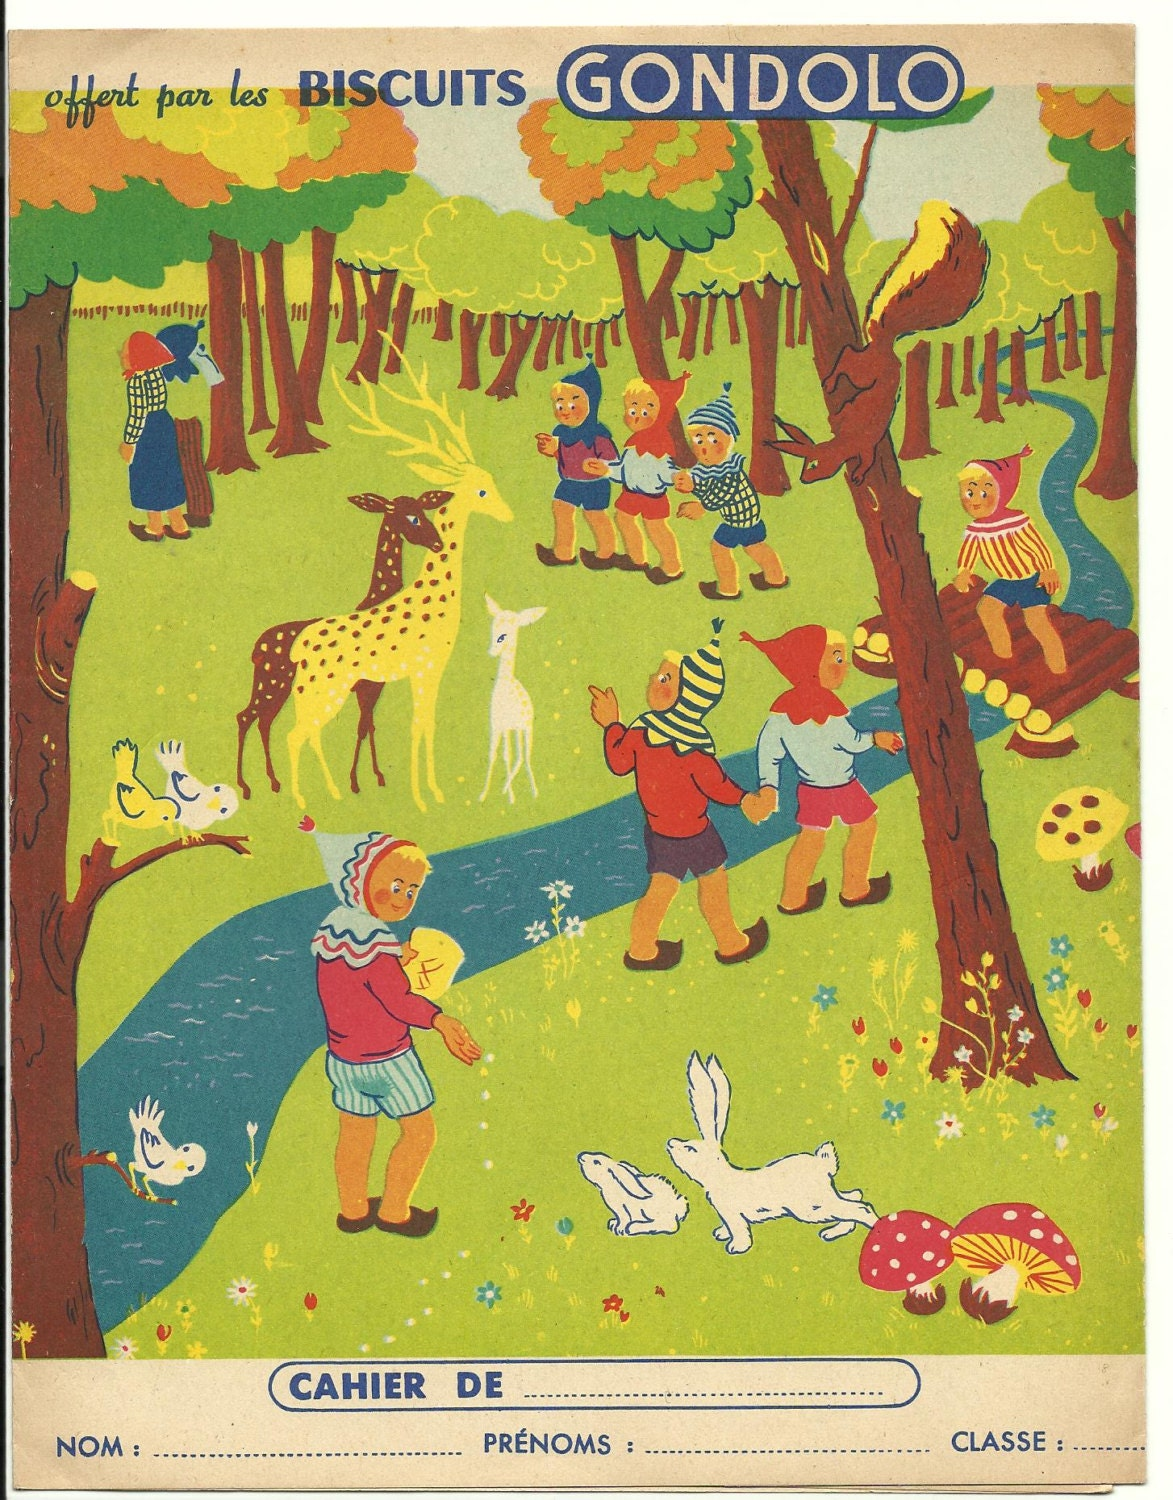 French School Book Cover : French school book cover animal forest nature cute by